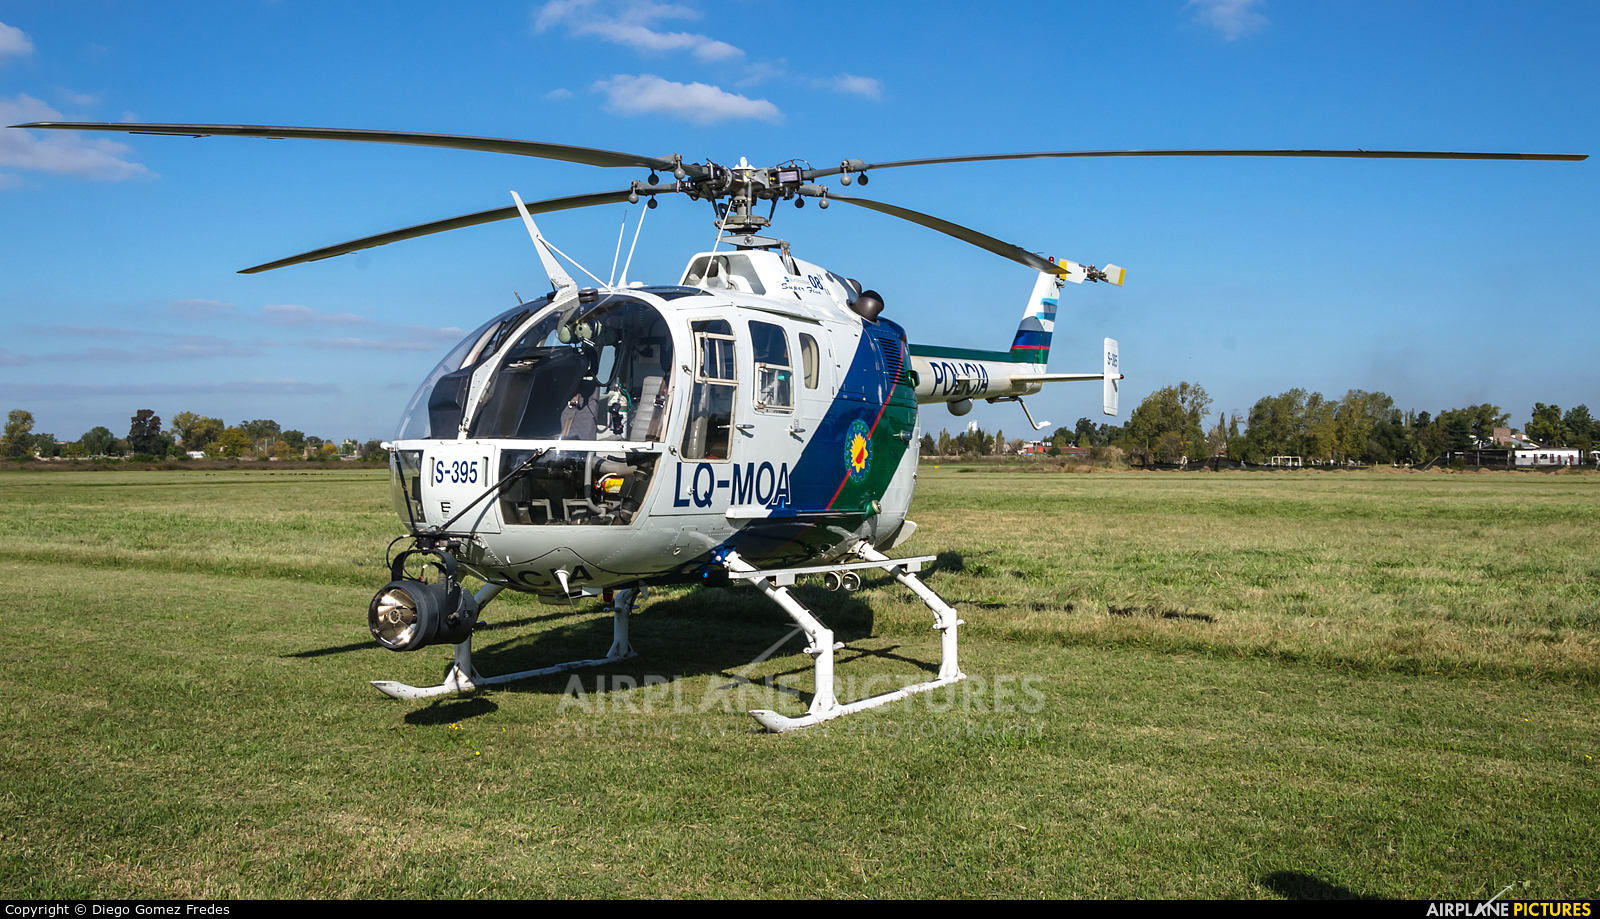 Argentina - Police LQ-MOA aircraft at University Río Matanza